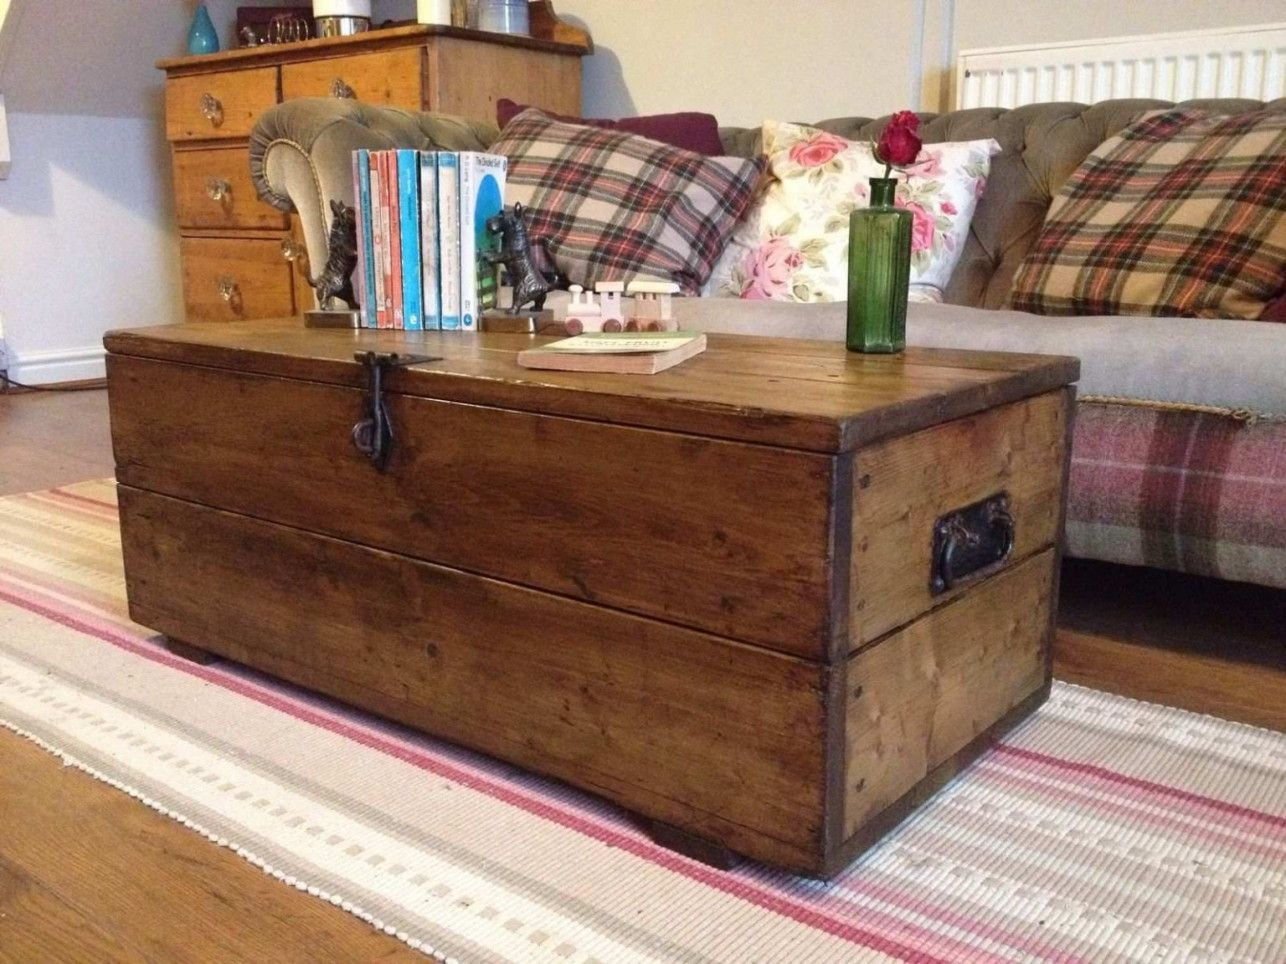 99 Luxury Rustic Chest Coffee Table 2017 Chest Coffee Table Wooden Trunk Coffee Table Wooden Chest [ 964 x 1286 Pixel ]